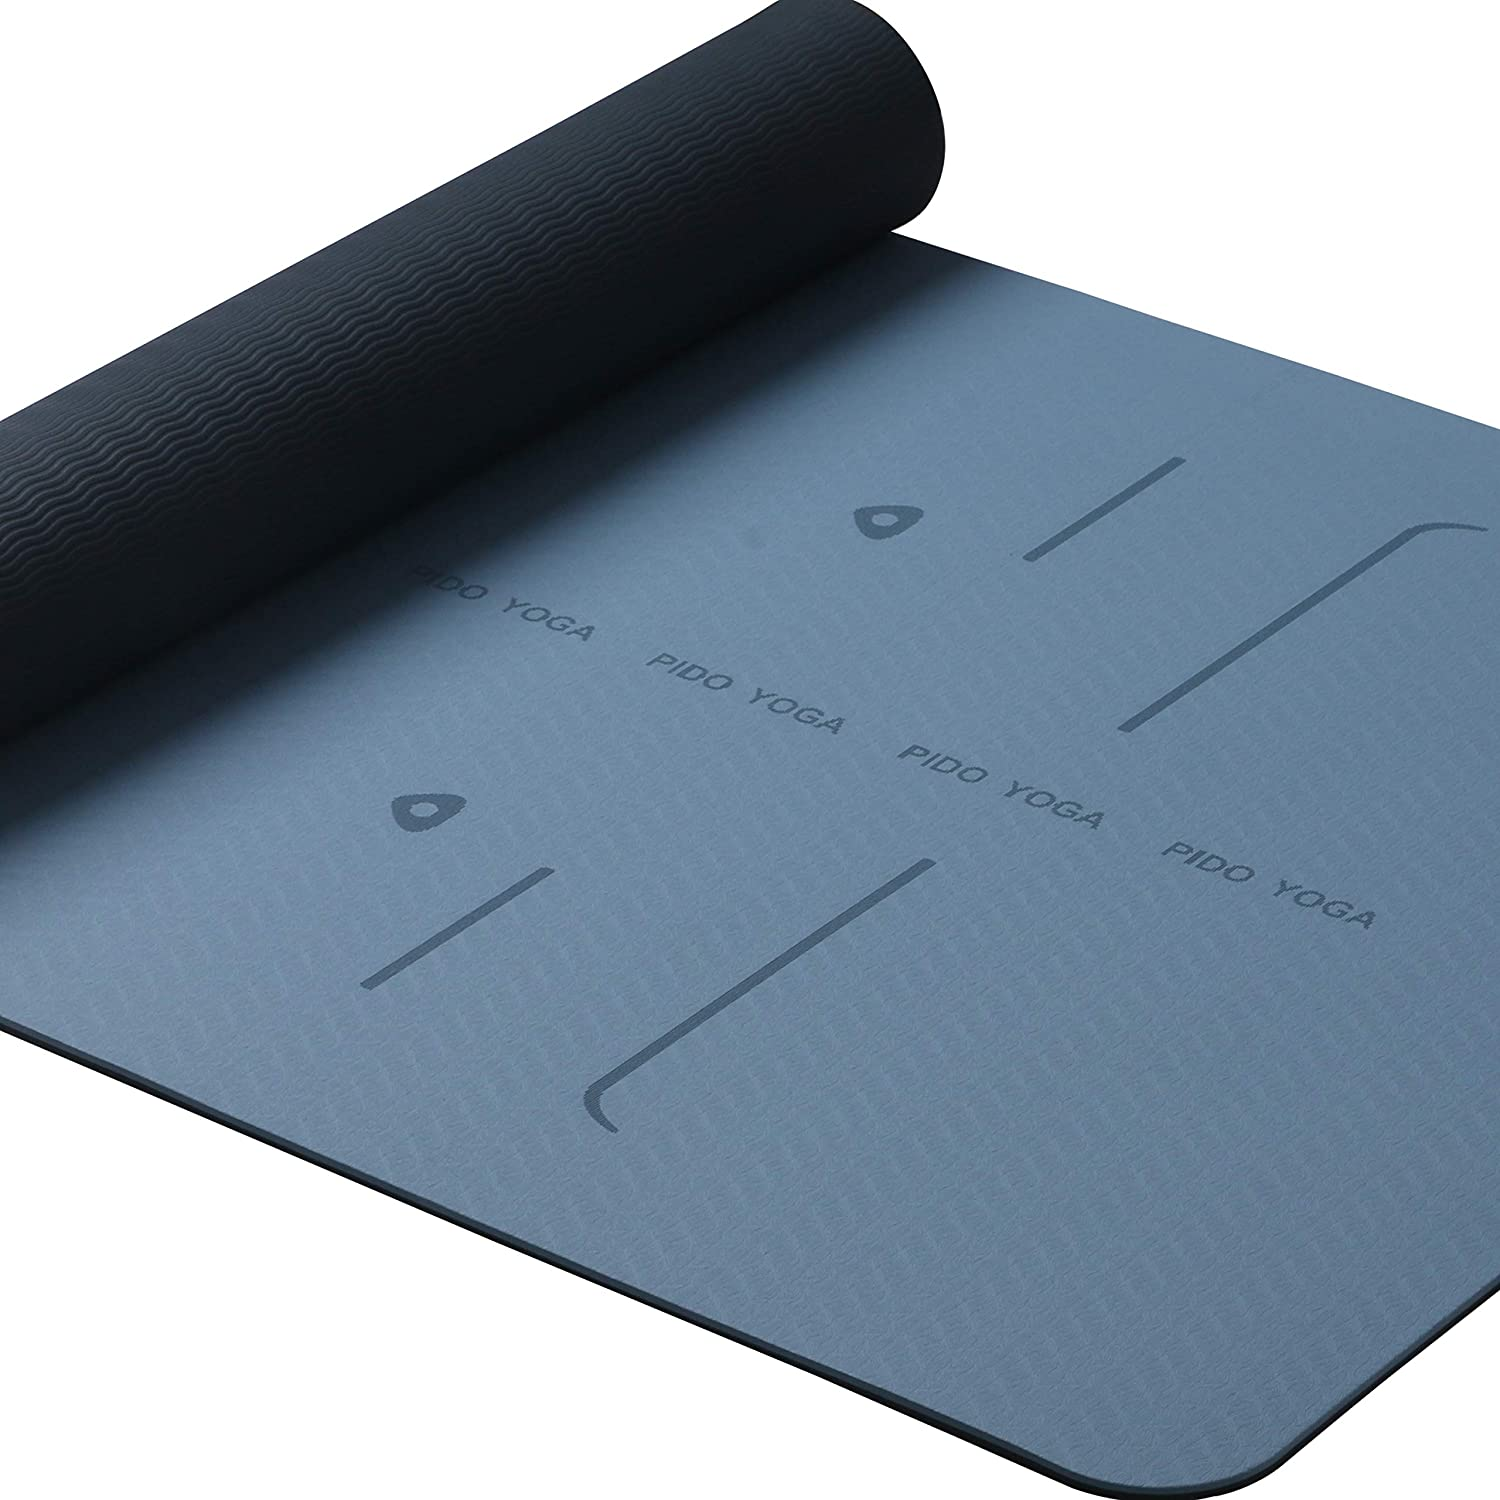 WWWW PIDO Yoga Mat TPE Eco Friendly Sticky Non Slip Exercise Mat Alignment Lines with Body Alignment System with Carrying Strap and Bag,72 x26 Extra 1 4